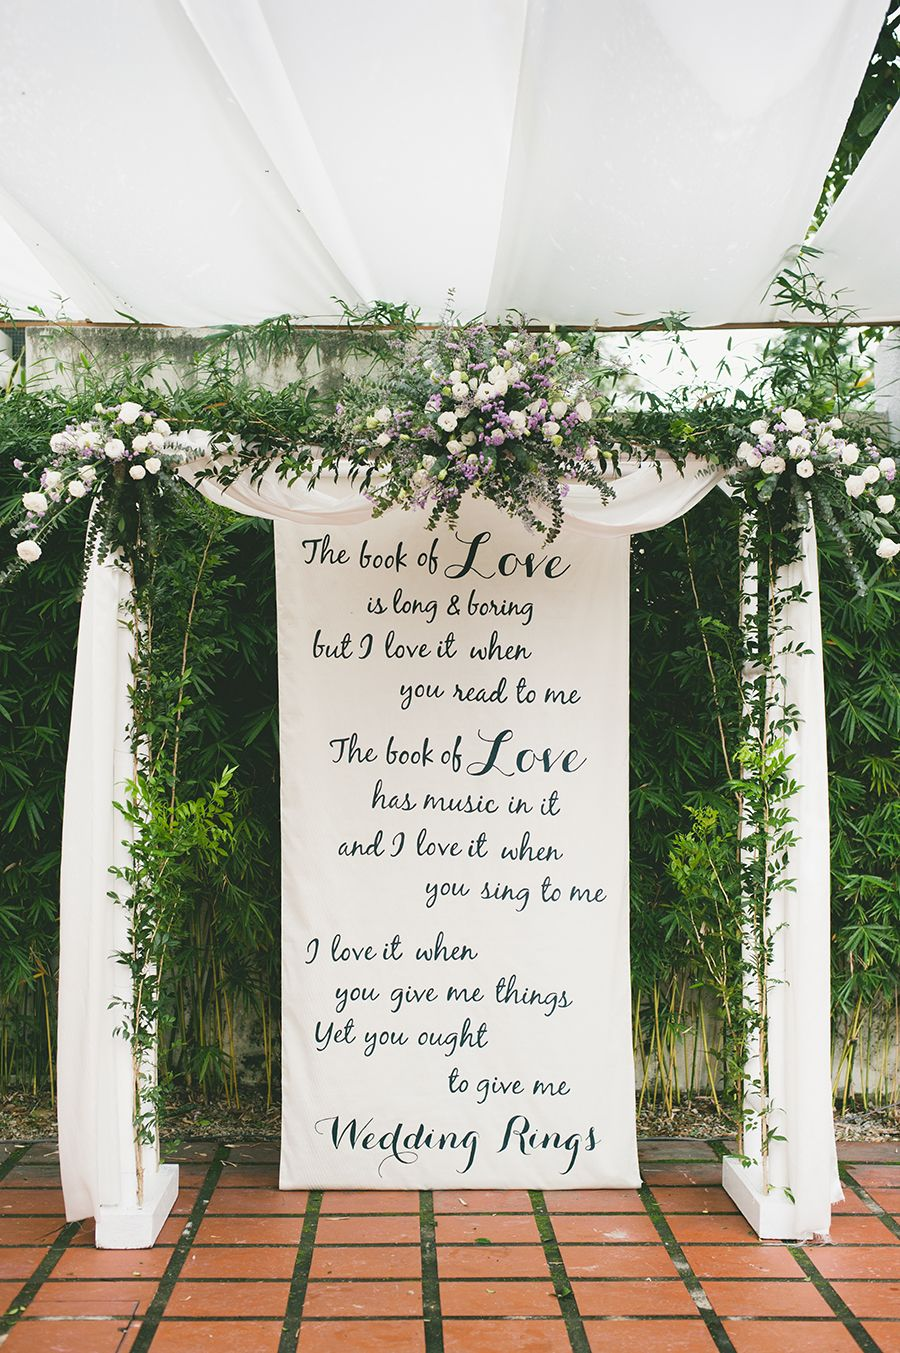 Tze yip and kai hsinus lovely diy backyard wedding in wedding